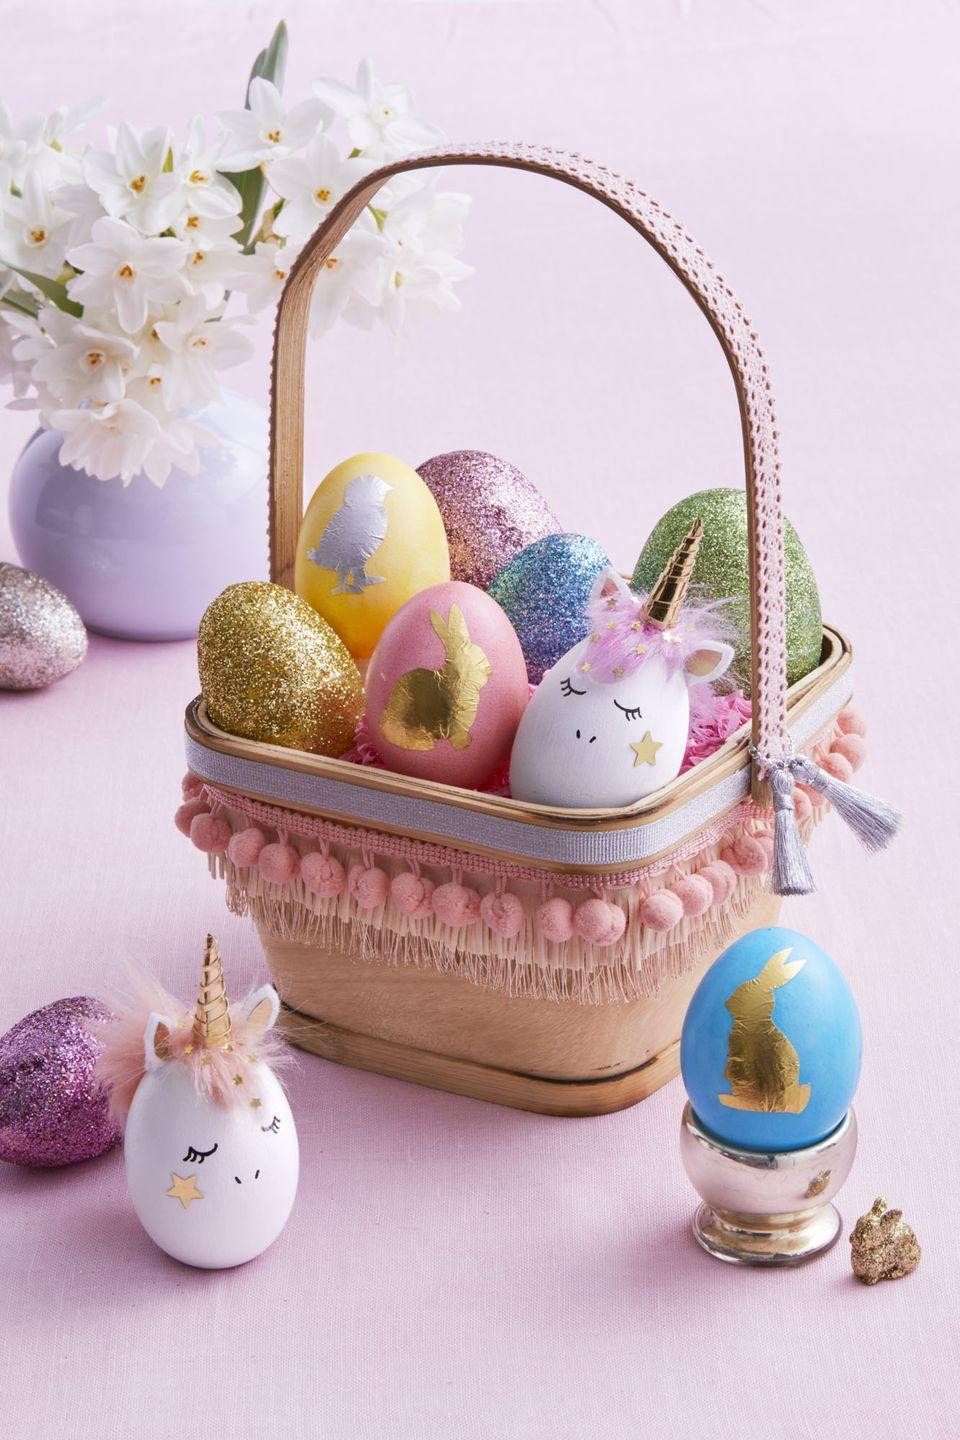 "<p><strong>Lovely Unicorn:</strong> Paint a wooden egg white; let dry. Draw on face. Cut a mane from faux-fur trim, color in an egg dye bath, and attach (once dry) with fabric glue. <a href=""https://www.womansday.com/home/crafts-projects/a18837631/easter-egg-templates/"" rel=""nofollow noopener"" target=""_blank"" data-ylk=""slk:Use templates to make felt ears and a gold paper horn"" class=""link rapid-noclick-resp"">Use templates to make felt ears and a gold paper horn</a>; assemble and glue to egg. Wrap a 3 x 1/8-in. strip of gold paper around horn; secure with glue. Glue star confetti to cheek and hair.</p><p><strong>Shiny Silhouette:</strong> Use the <a href=""https://www.womansday.com/home/crafts-projects/a18837631/easter-egg-templates/"" rel=""nofollow noopener"" target=""_blank"" data-ylk=""slk:templates to carefully cut a chick or bunny"" class=""link rapid-noclick-resp"">templates to carefully cut a chick or bunny</a> from a foil candy wrapper. Adhere to dyed egg with Mod Podge. Use a damp cotton swab to gently wipe clean the foil shape; let dry.</p><p><strong>Dazzling Glitter Egg: </strong>Try this trick on basic plastic eggs: Lightly sand the outside, brush on glue, cover in glitter, and let dry.</p>"